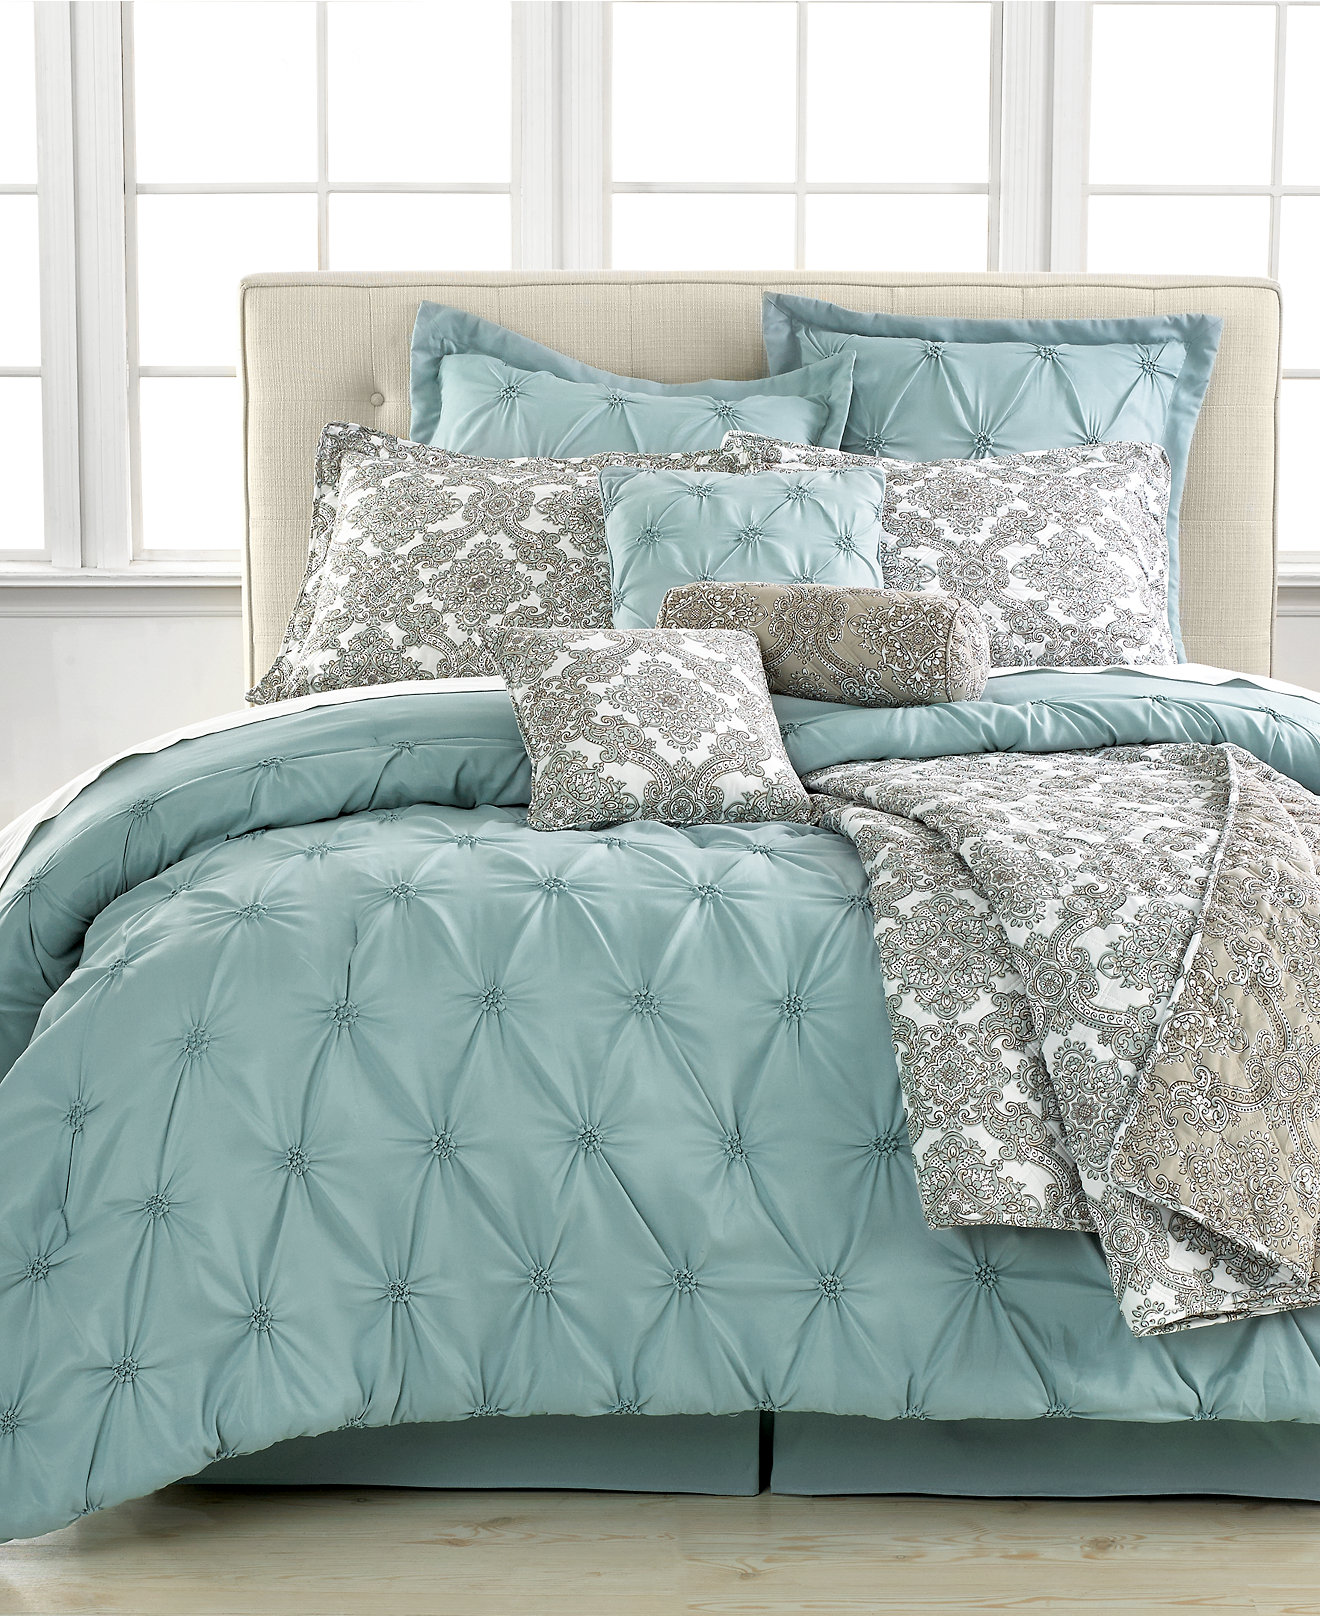 Queen Size Bedding Sets | Queen Size Bed Sets | Target Comforter